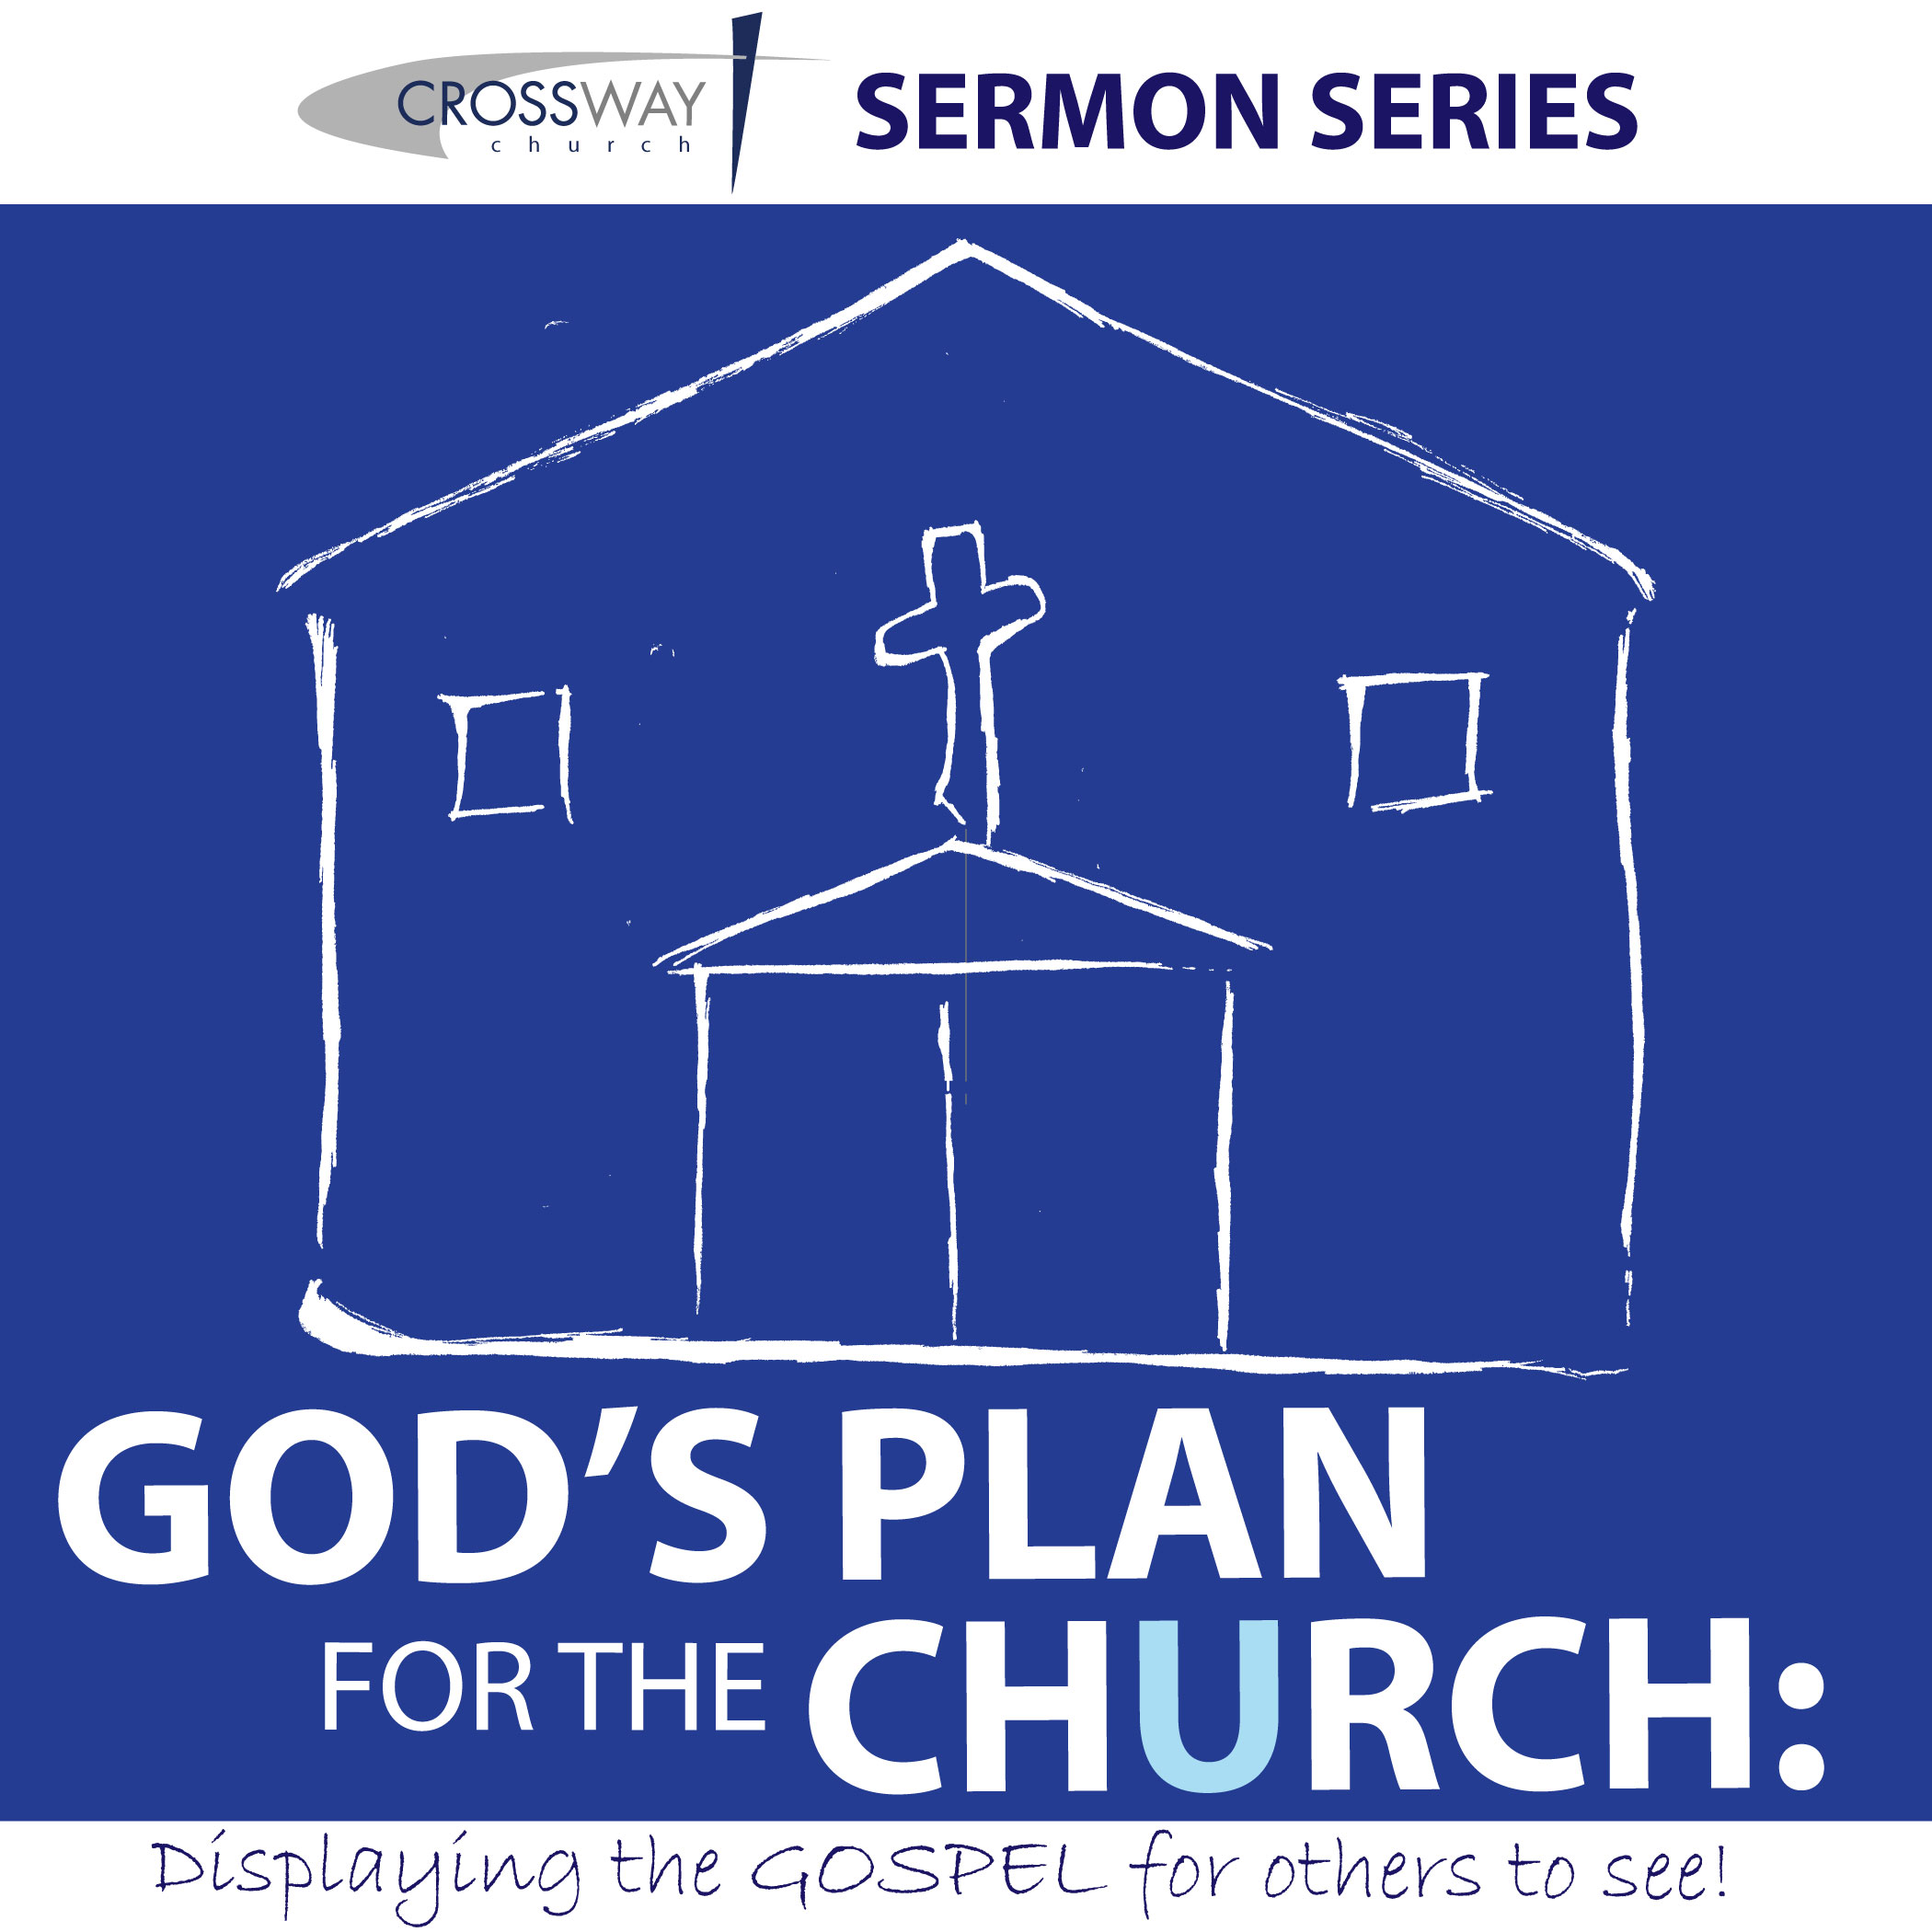 God's Plan for the Church: The Body of Christ (Part 3)